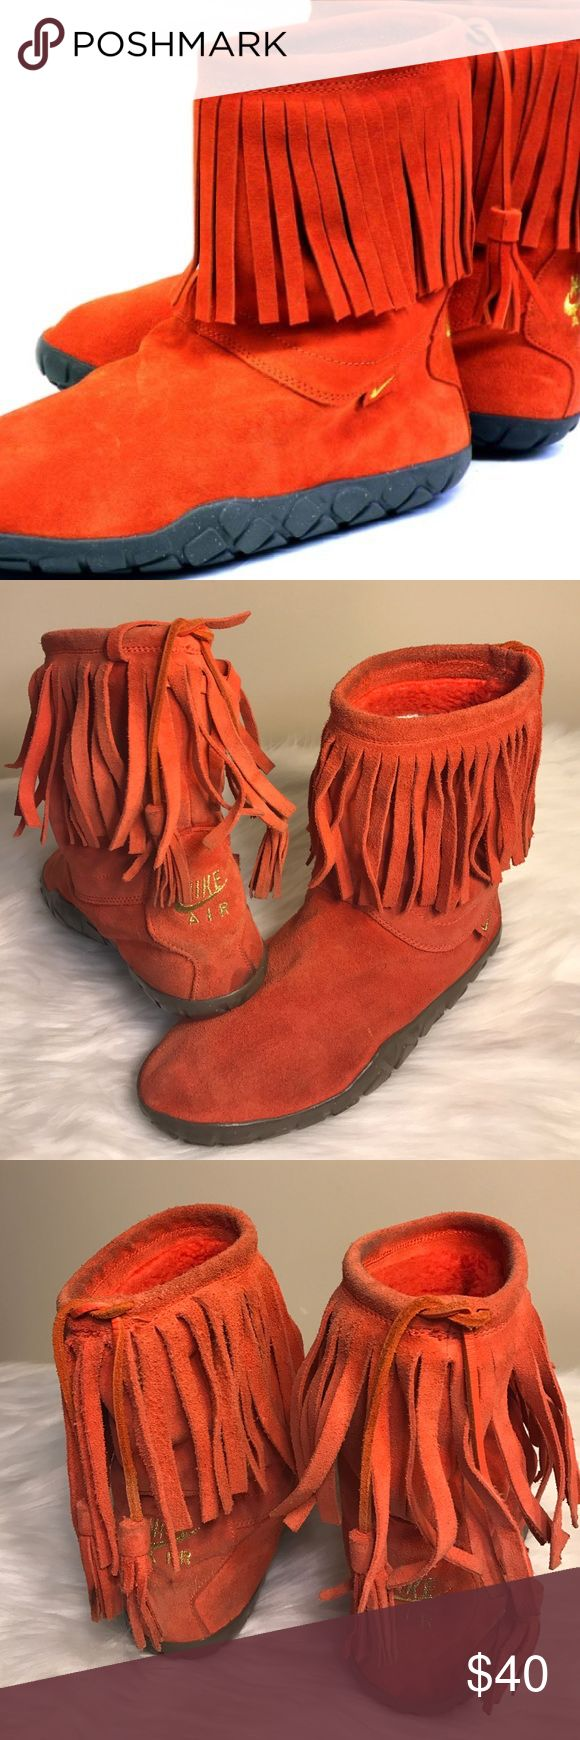 NIKE AIR ROSHE RUN TASSELS WOMENS BOOT Worn areas & has a stain on the front left Boot, as shown in photos. Very warm & nice tho Nike Shoes Winter & Rain Boots